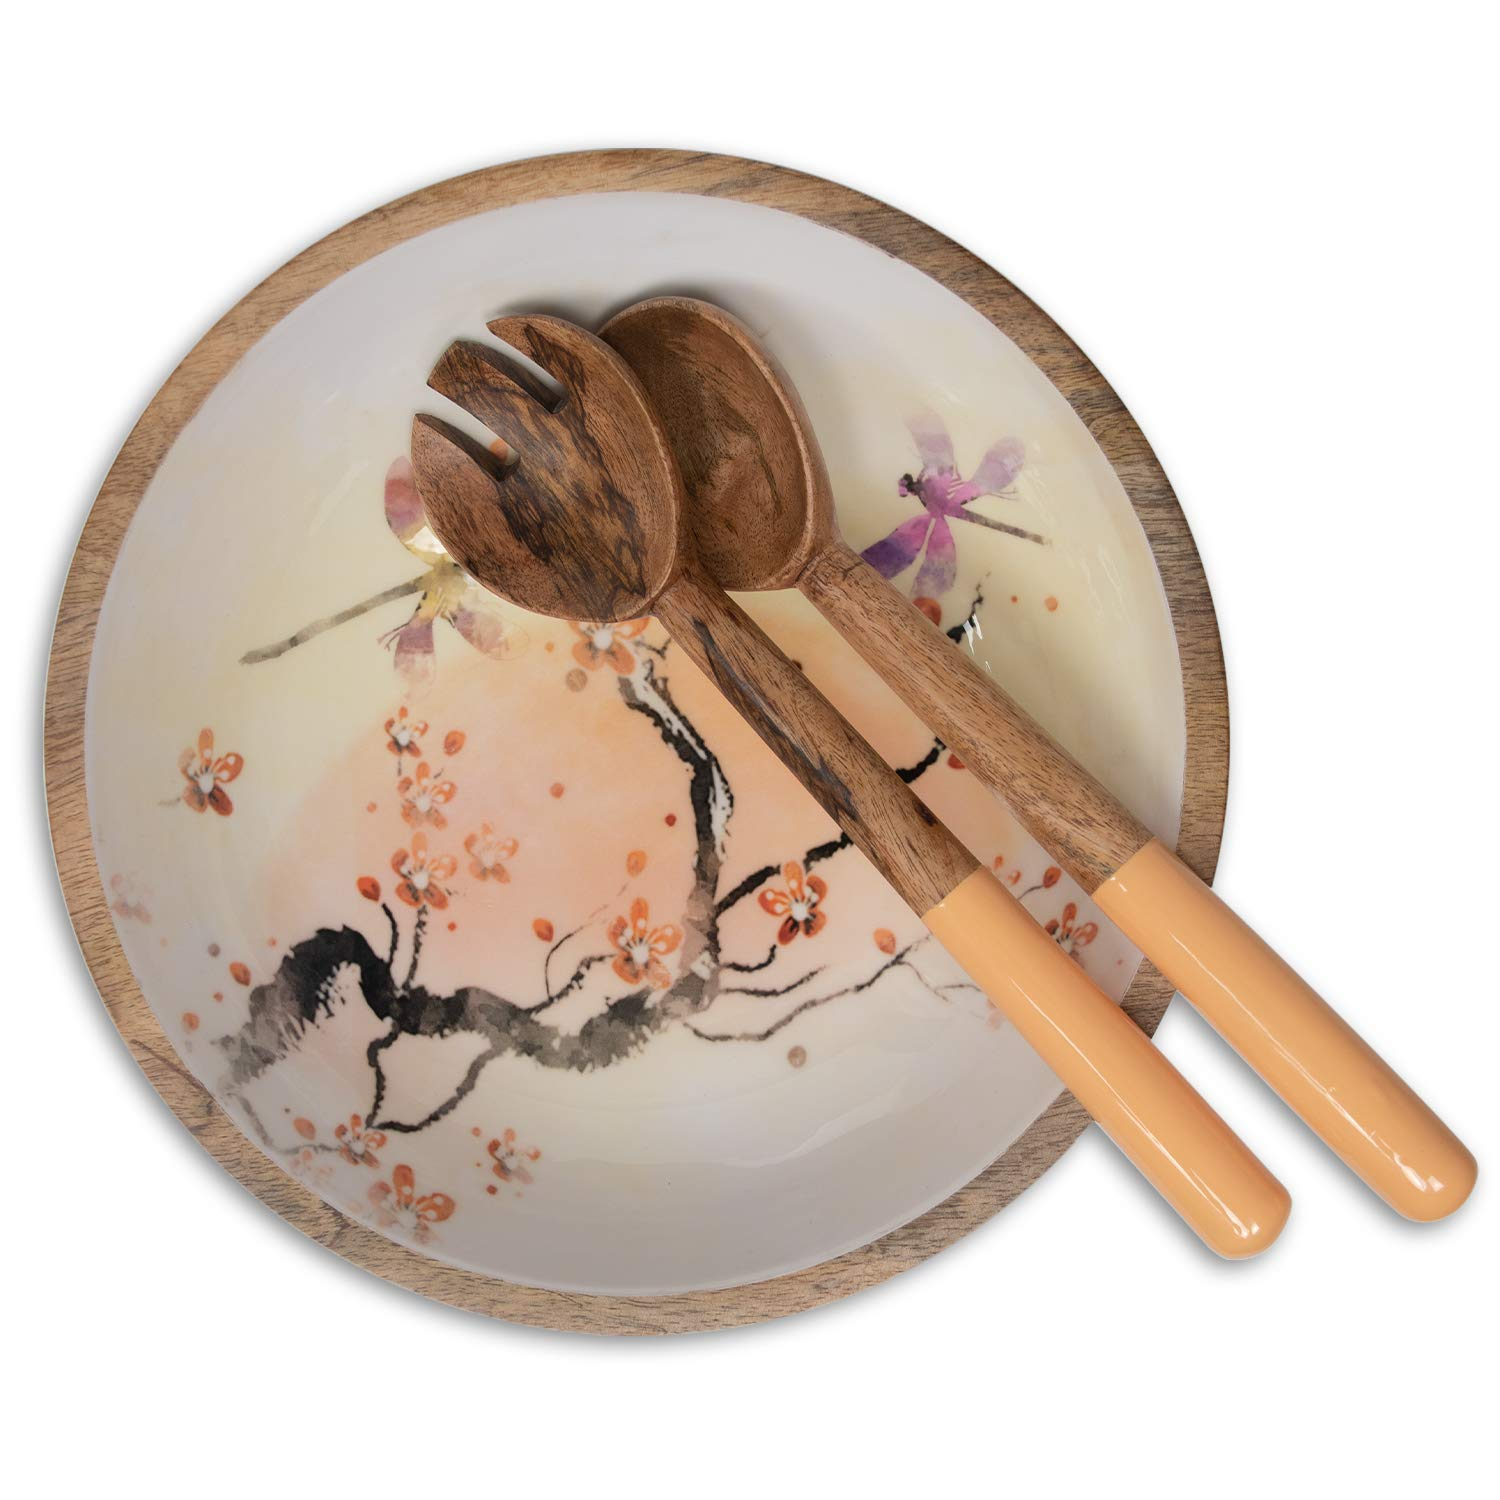 Wood Salad Bowl Set with Servers - Large 12 Inch Round Mango Wood Serving Bowl with Spoons for Soups, Fruit, Pasta, Caesar, Tossed, and Mixed Salads | Natural Mango Wood Serving Bowl Set by ELEETS COLLECTION (Image #3)